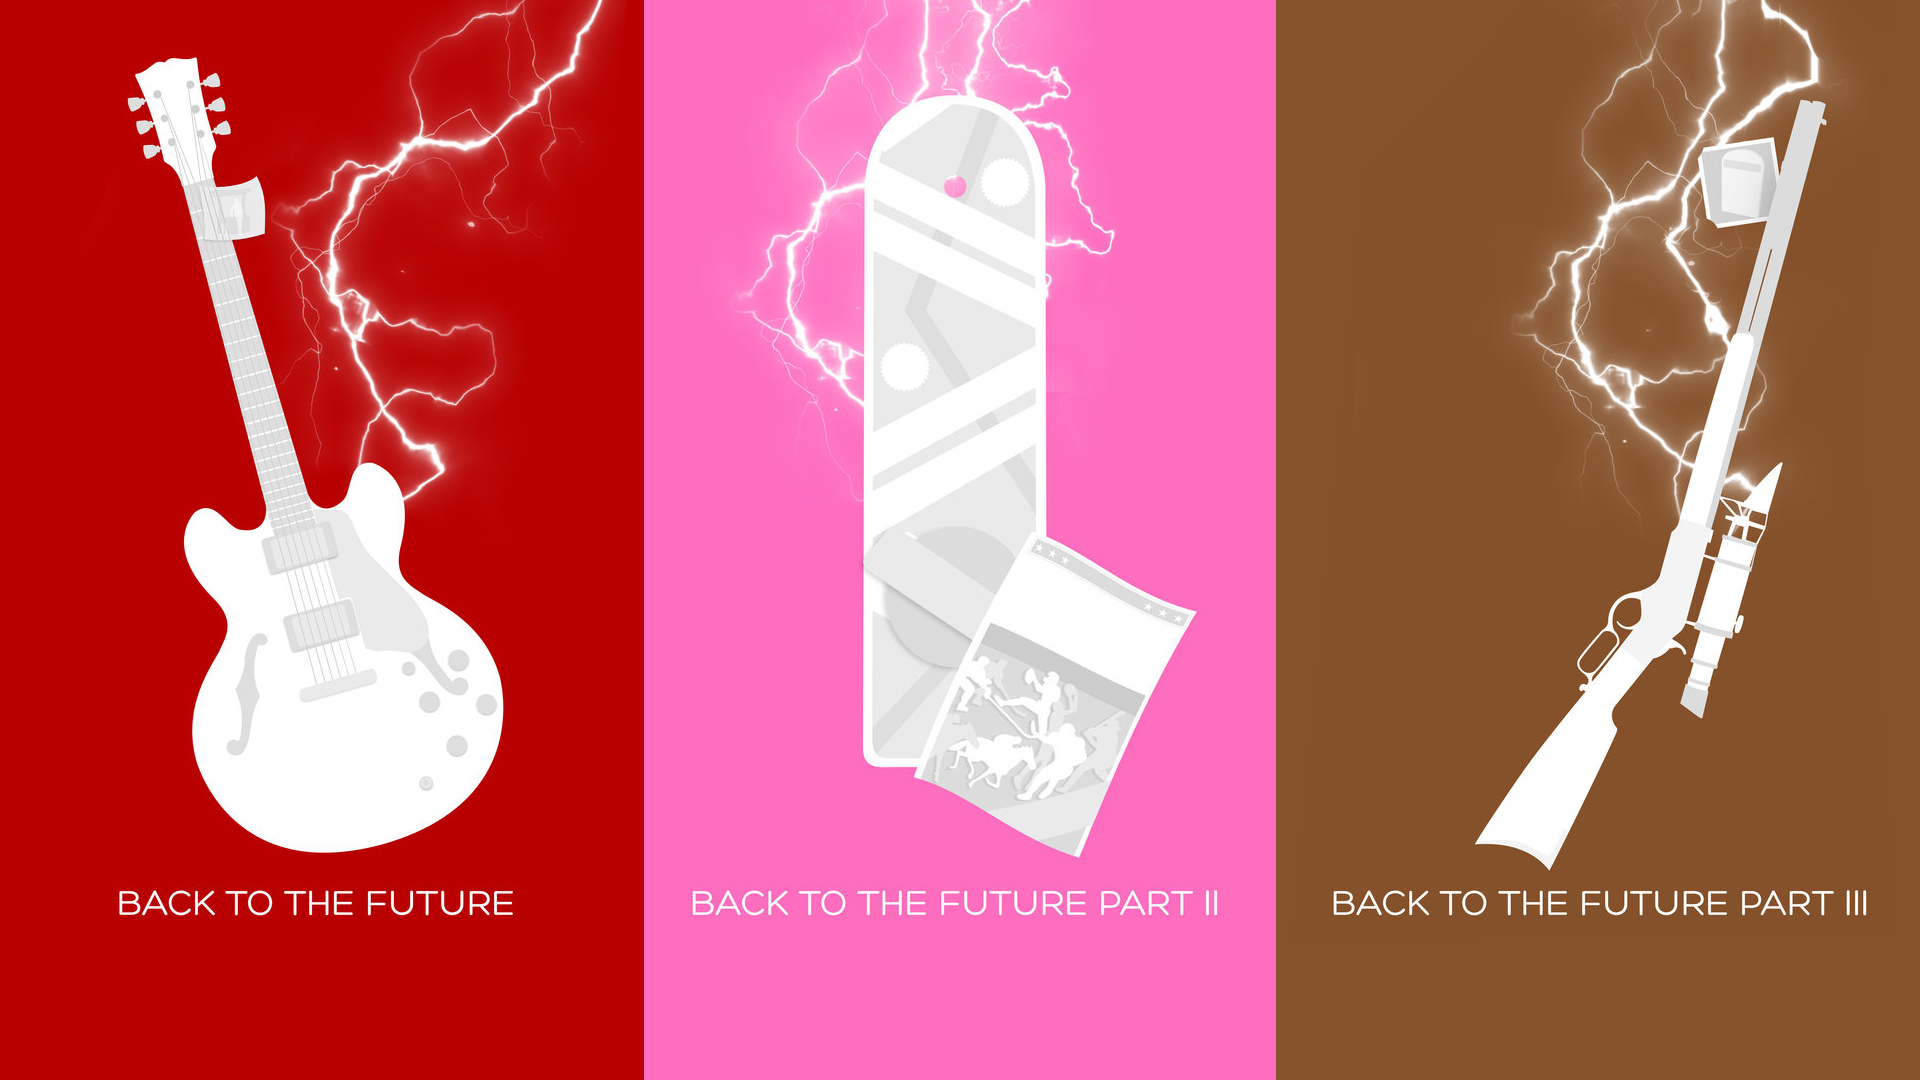 Back to the Future wallpaper 18147 1920x1080